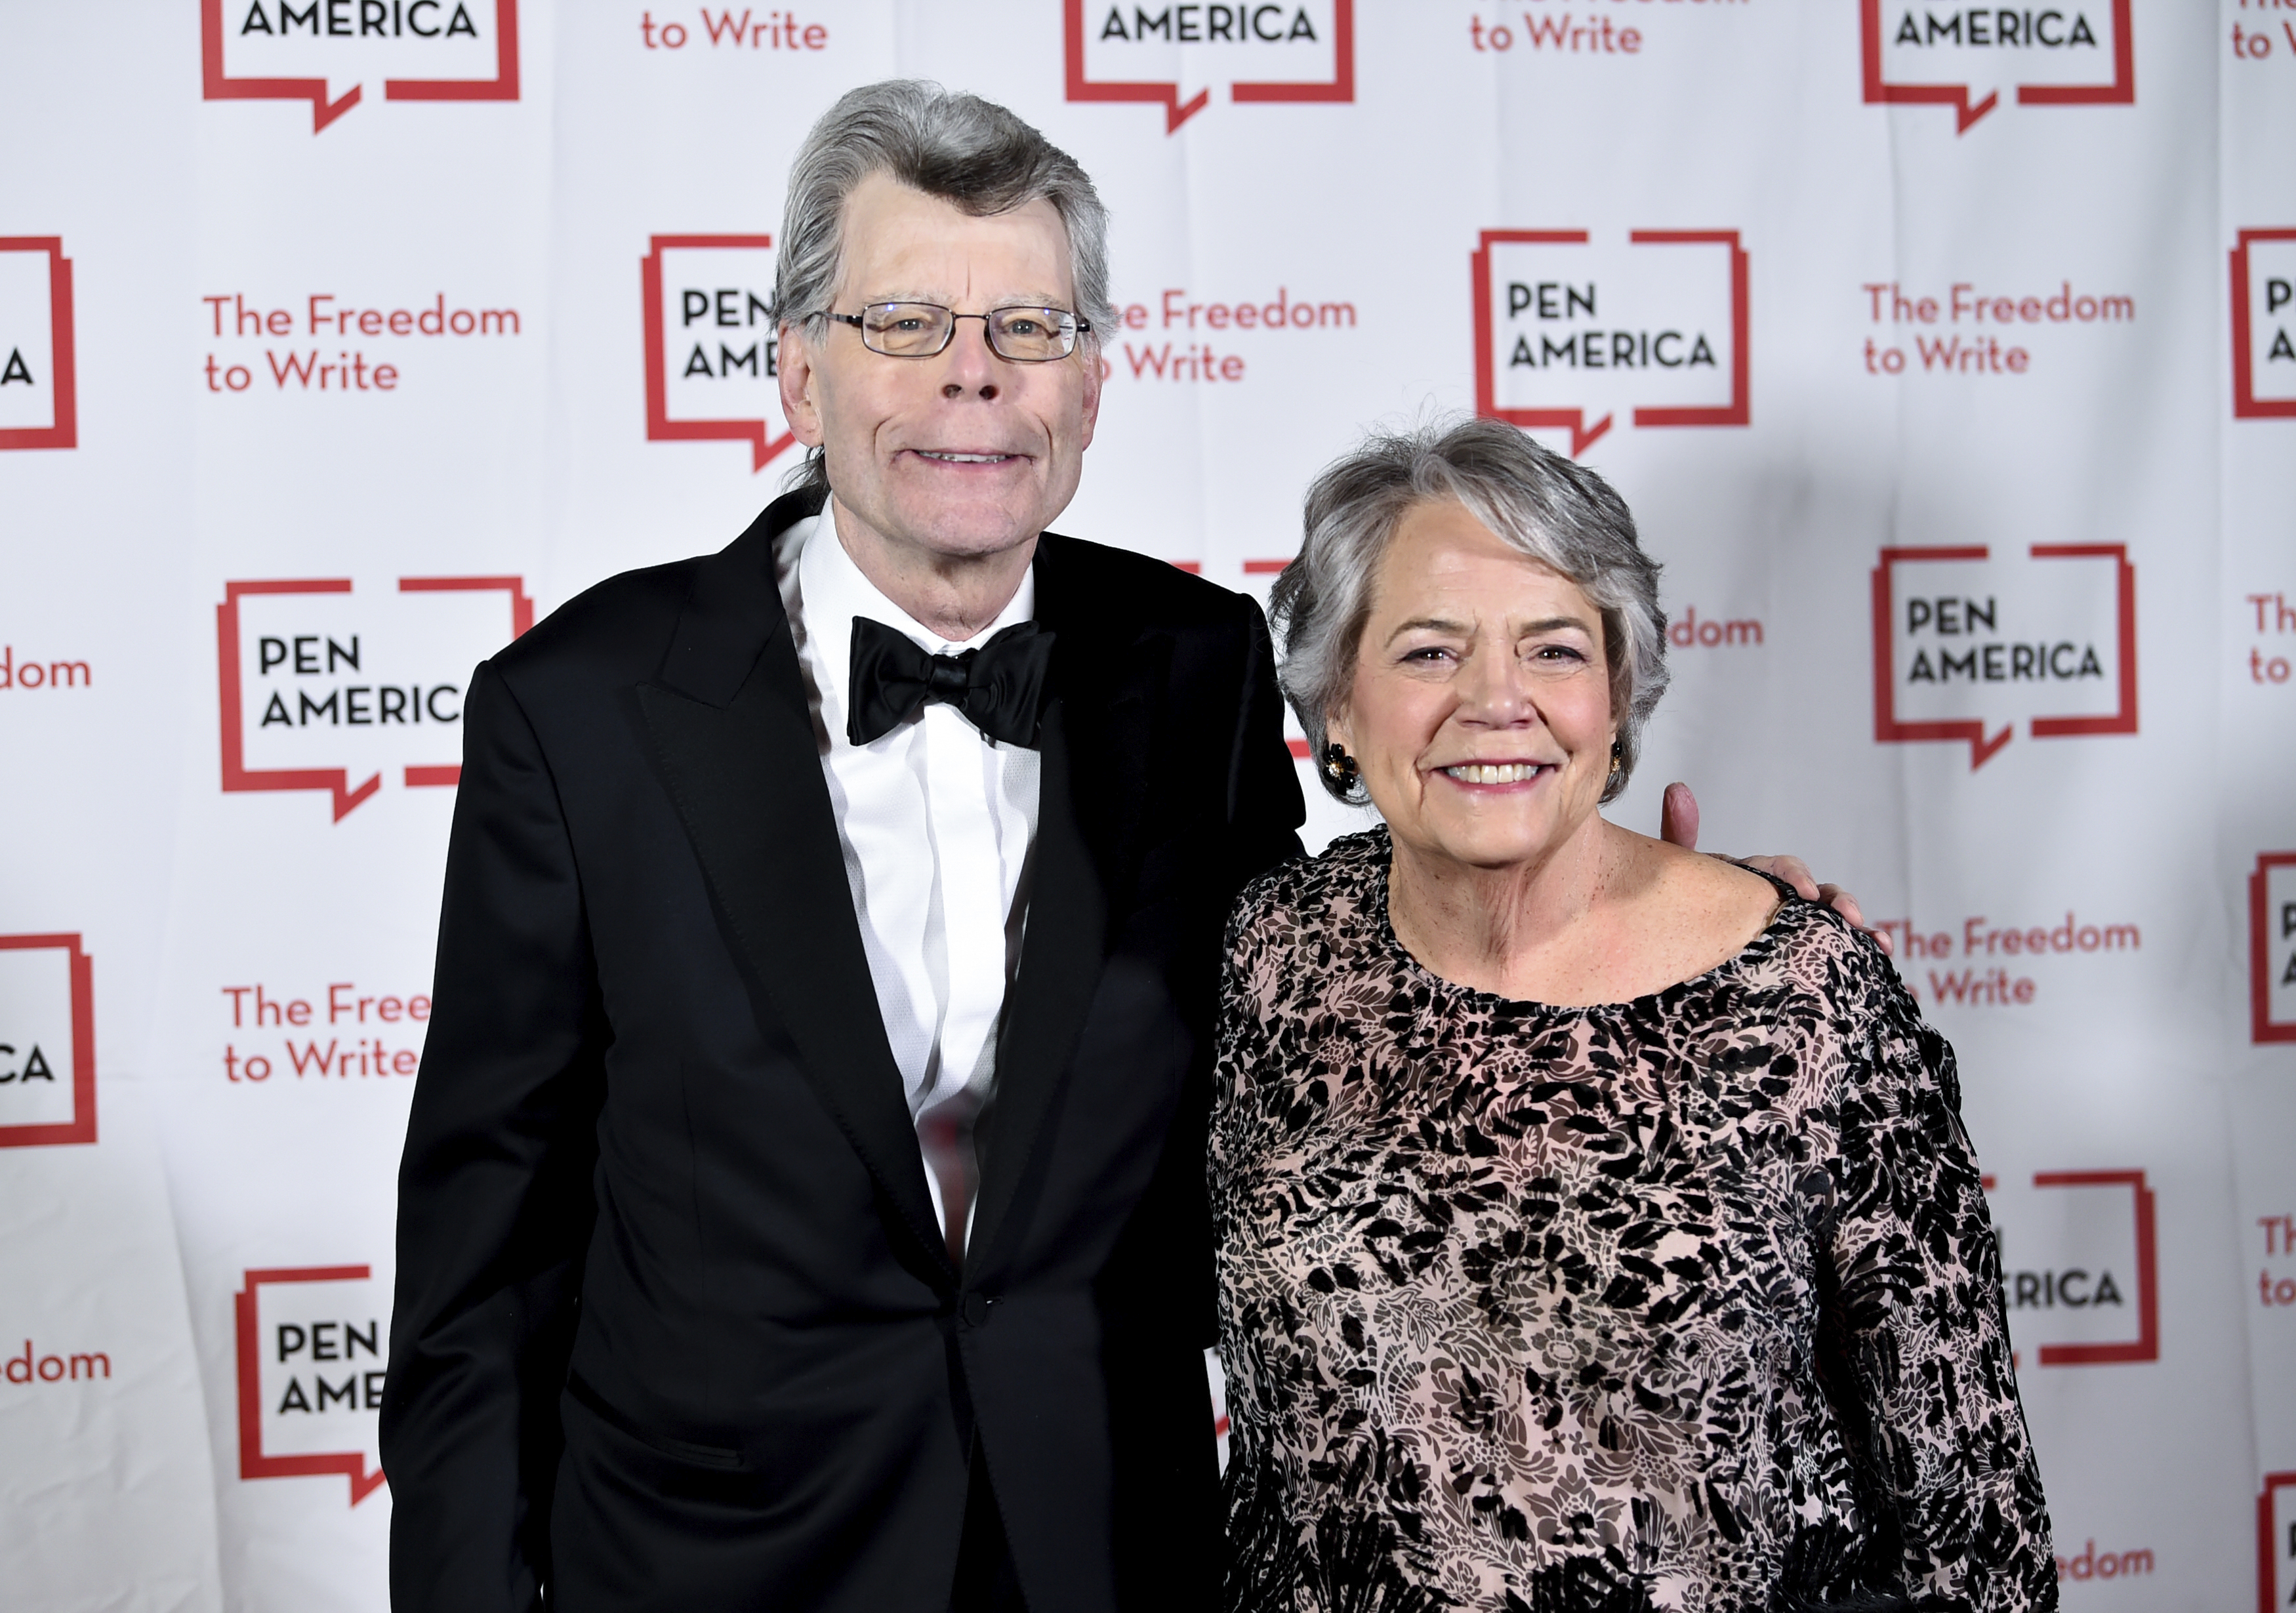 PEN literary service award recipient Stephen King poses with Simon & Schuster president Carolyn Reidy at the 2018 PEN Literary Gala at the American Museum of Natural History on Tuesday, May 22, 2018, in New York. (Photo by Evan Agostini/Invision/AP)